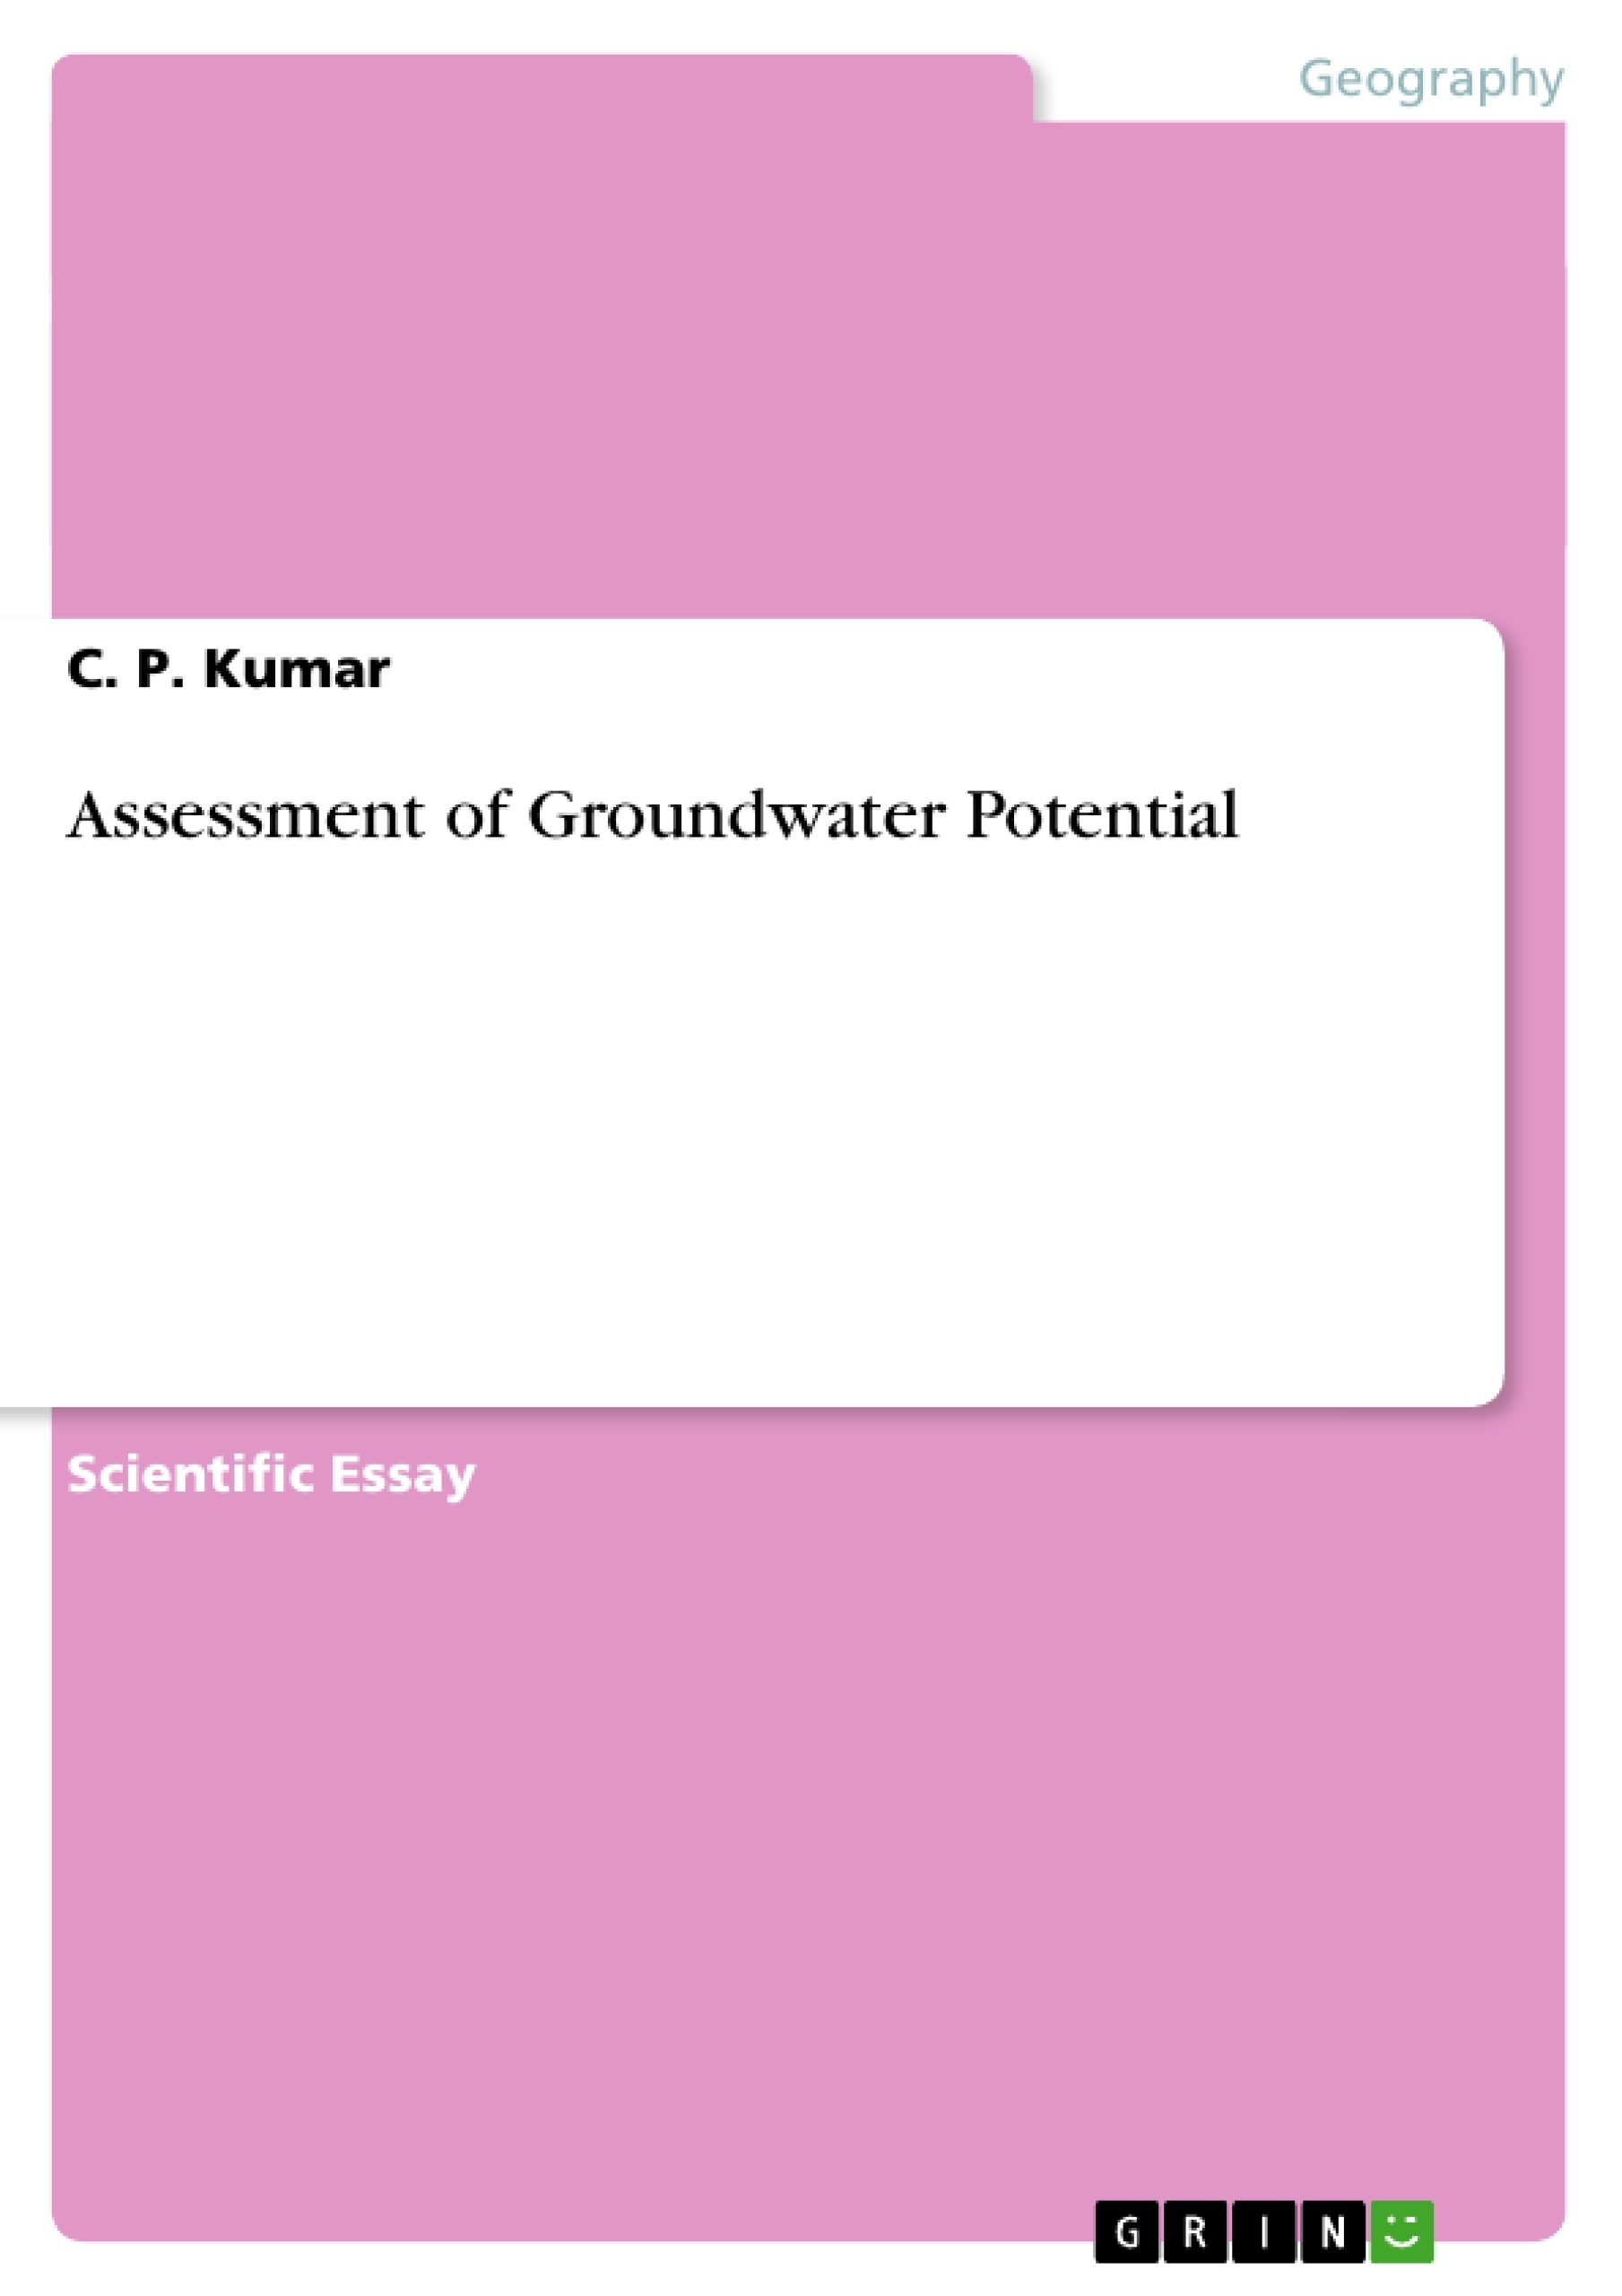 Title: Assessment of Groundwater Potential